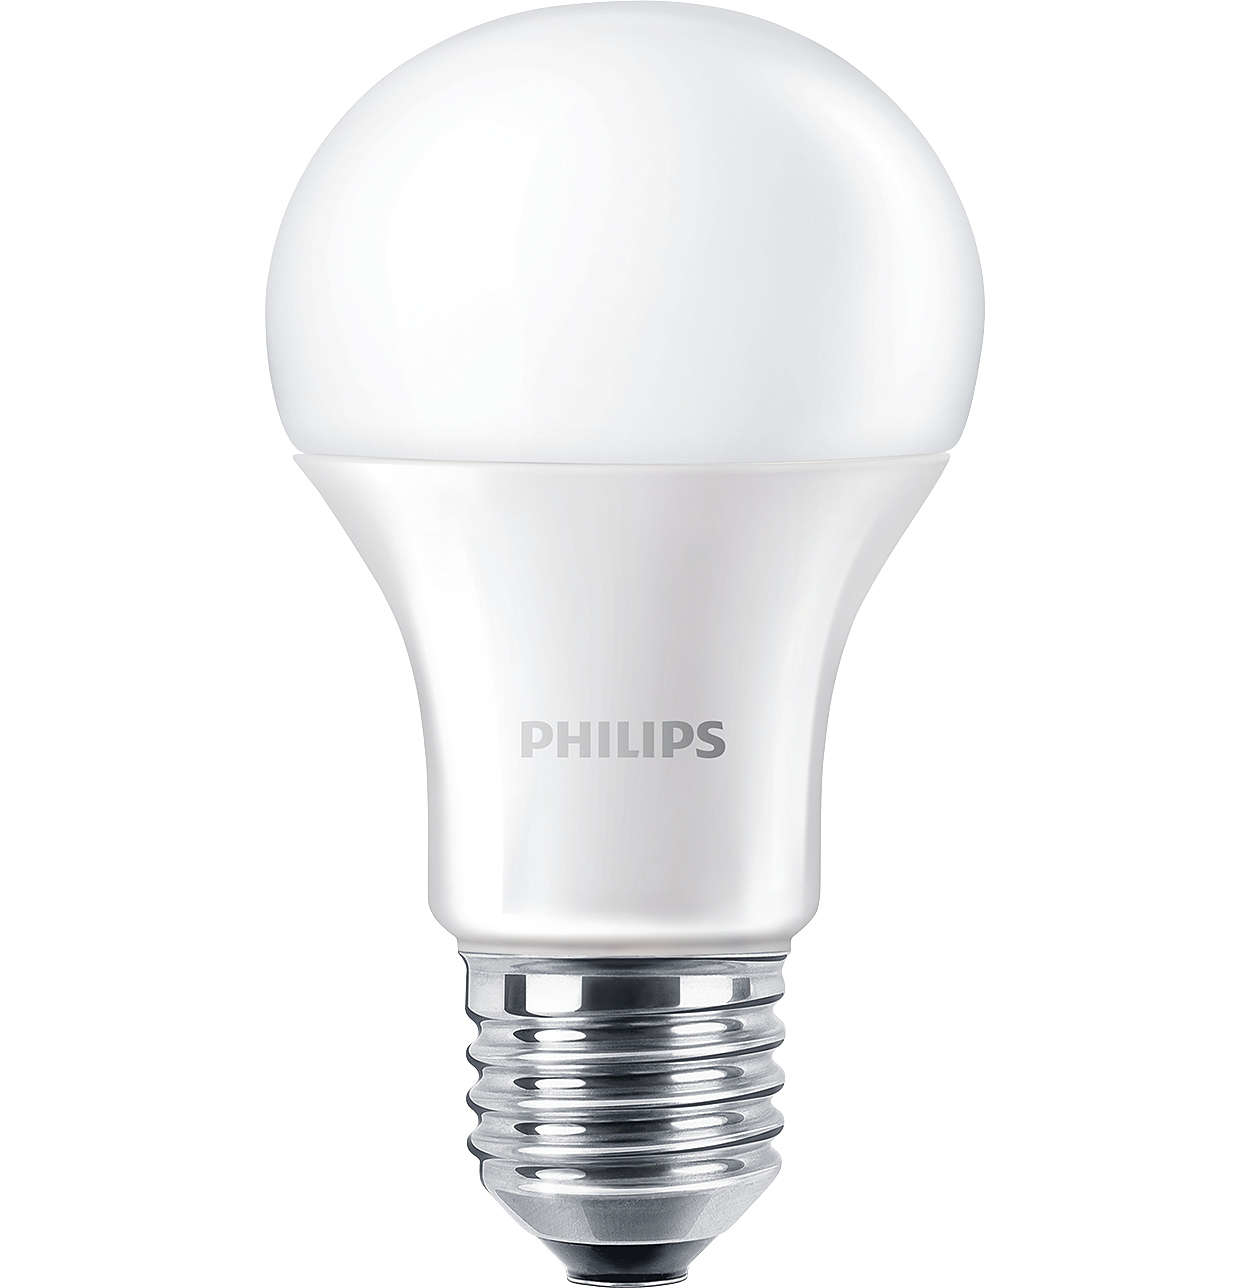 Philips - Lampadina LED - Core40840